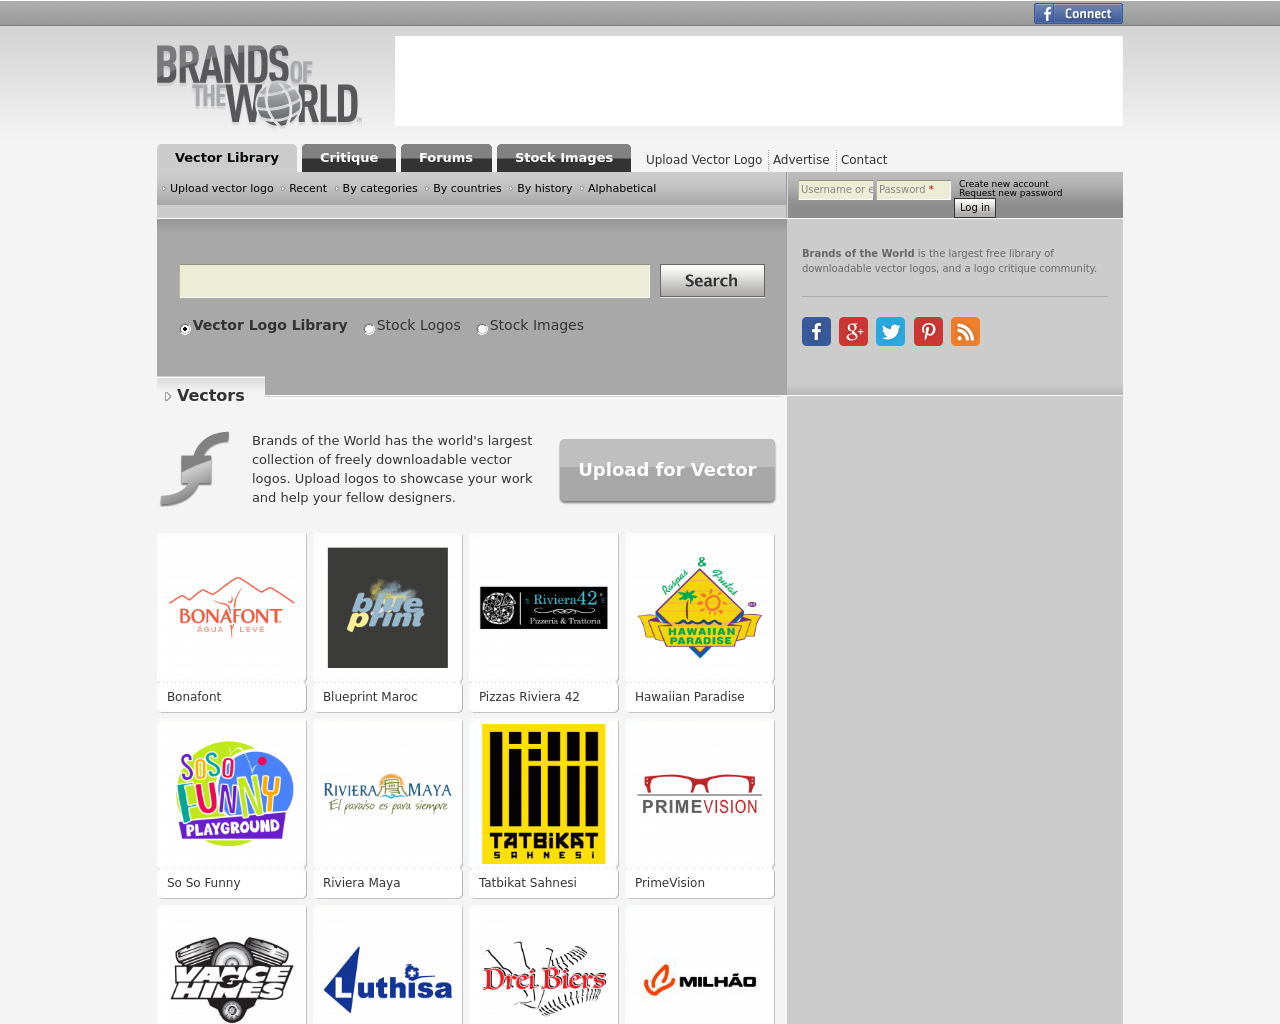 Brands-Of-The-World-Advertising-Reviews-Pricing